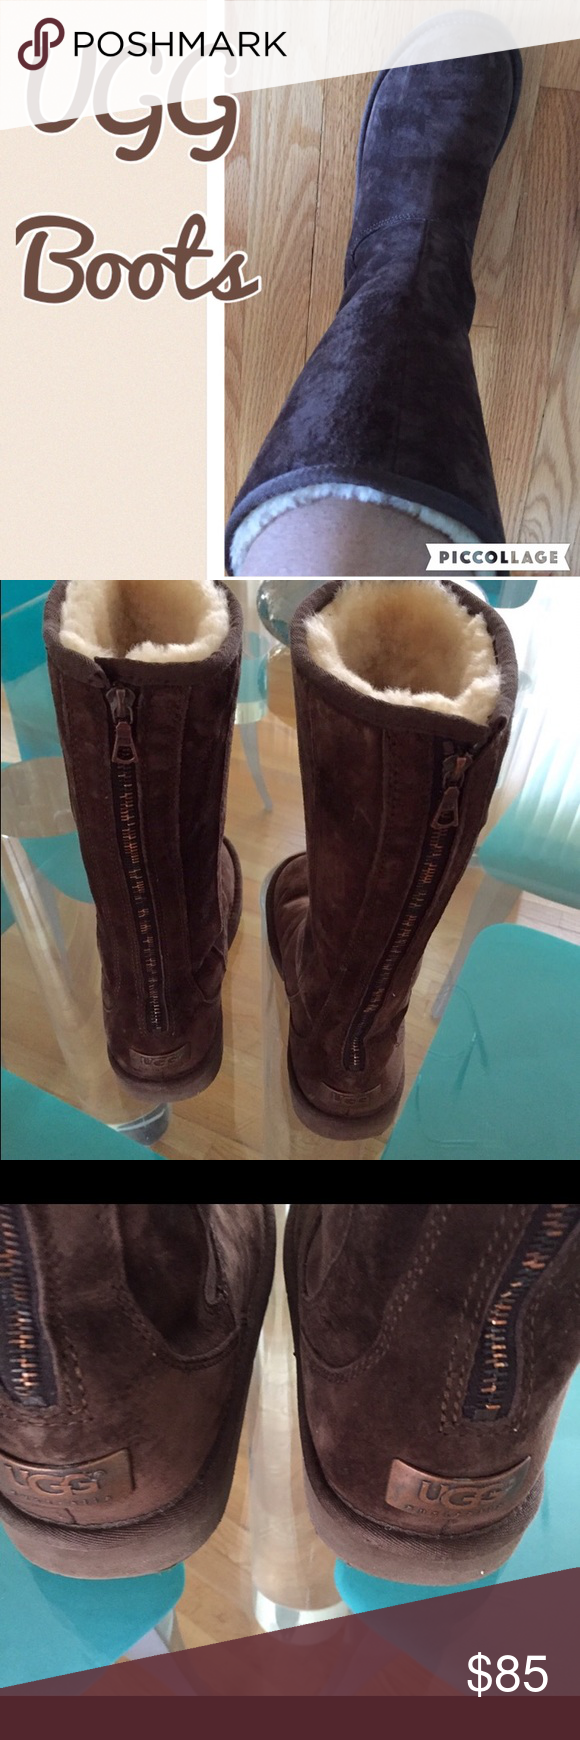 2416b85aaf5 Chocolate Brown Ugg Boots Chocolate Brown Tall Ugg Boots. Boots have ...